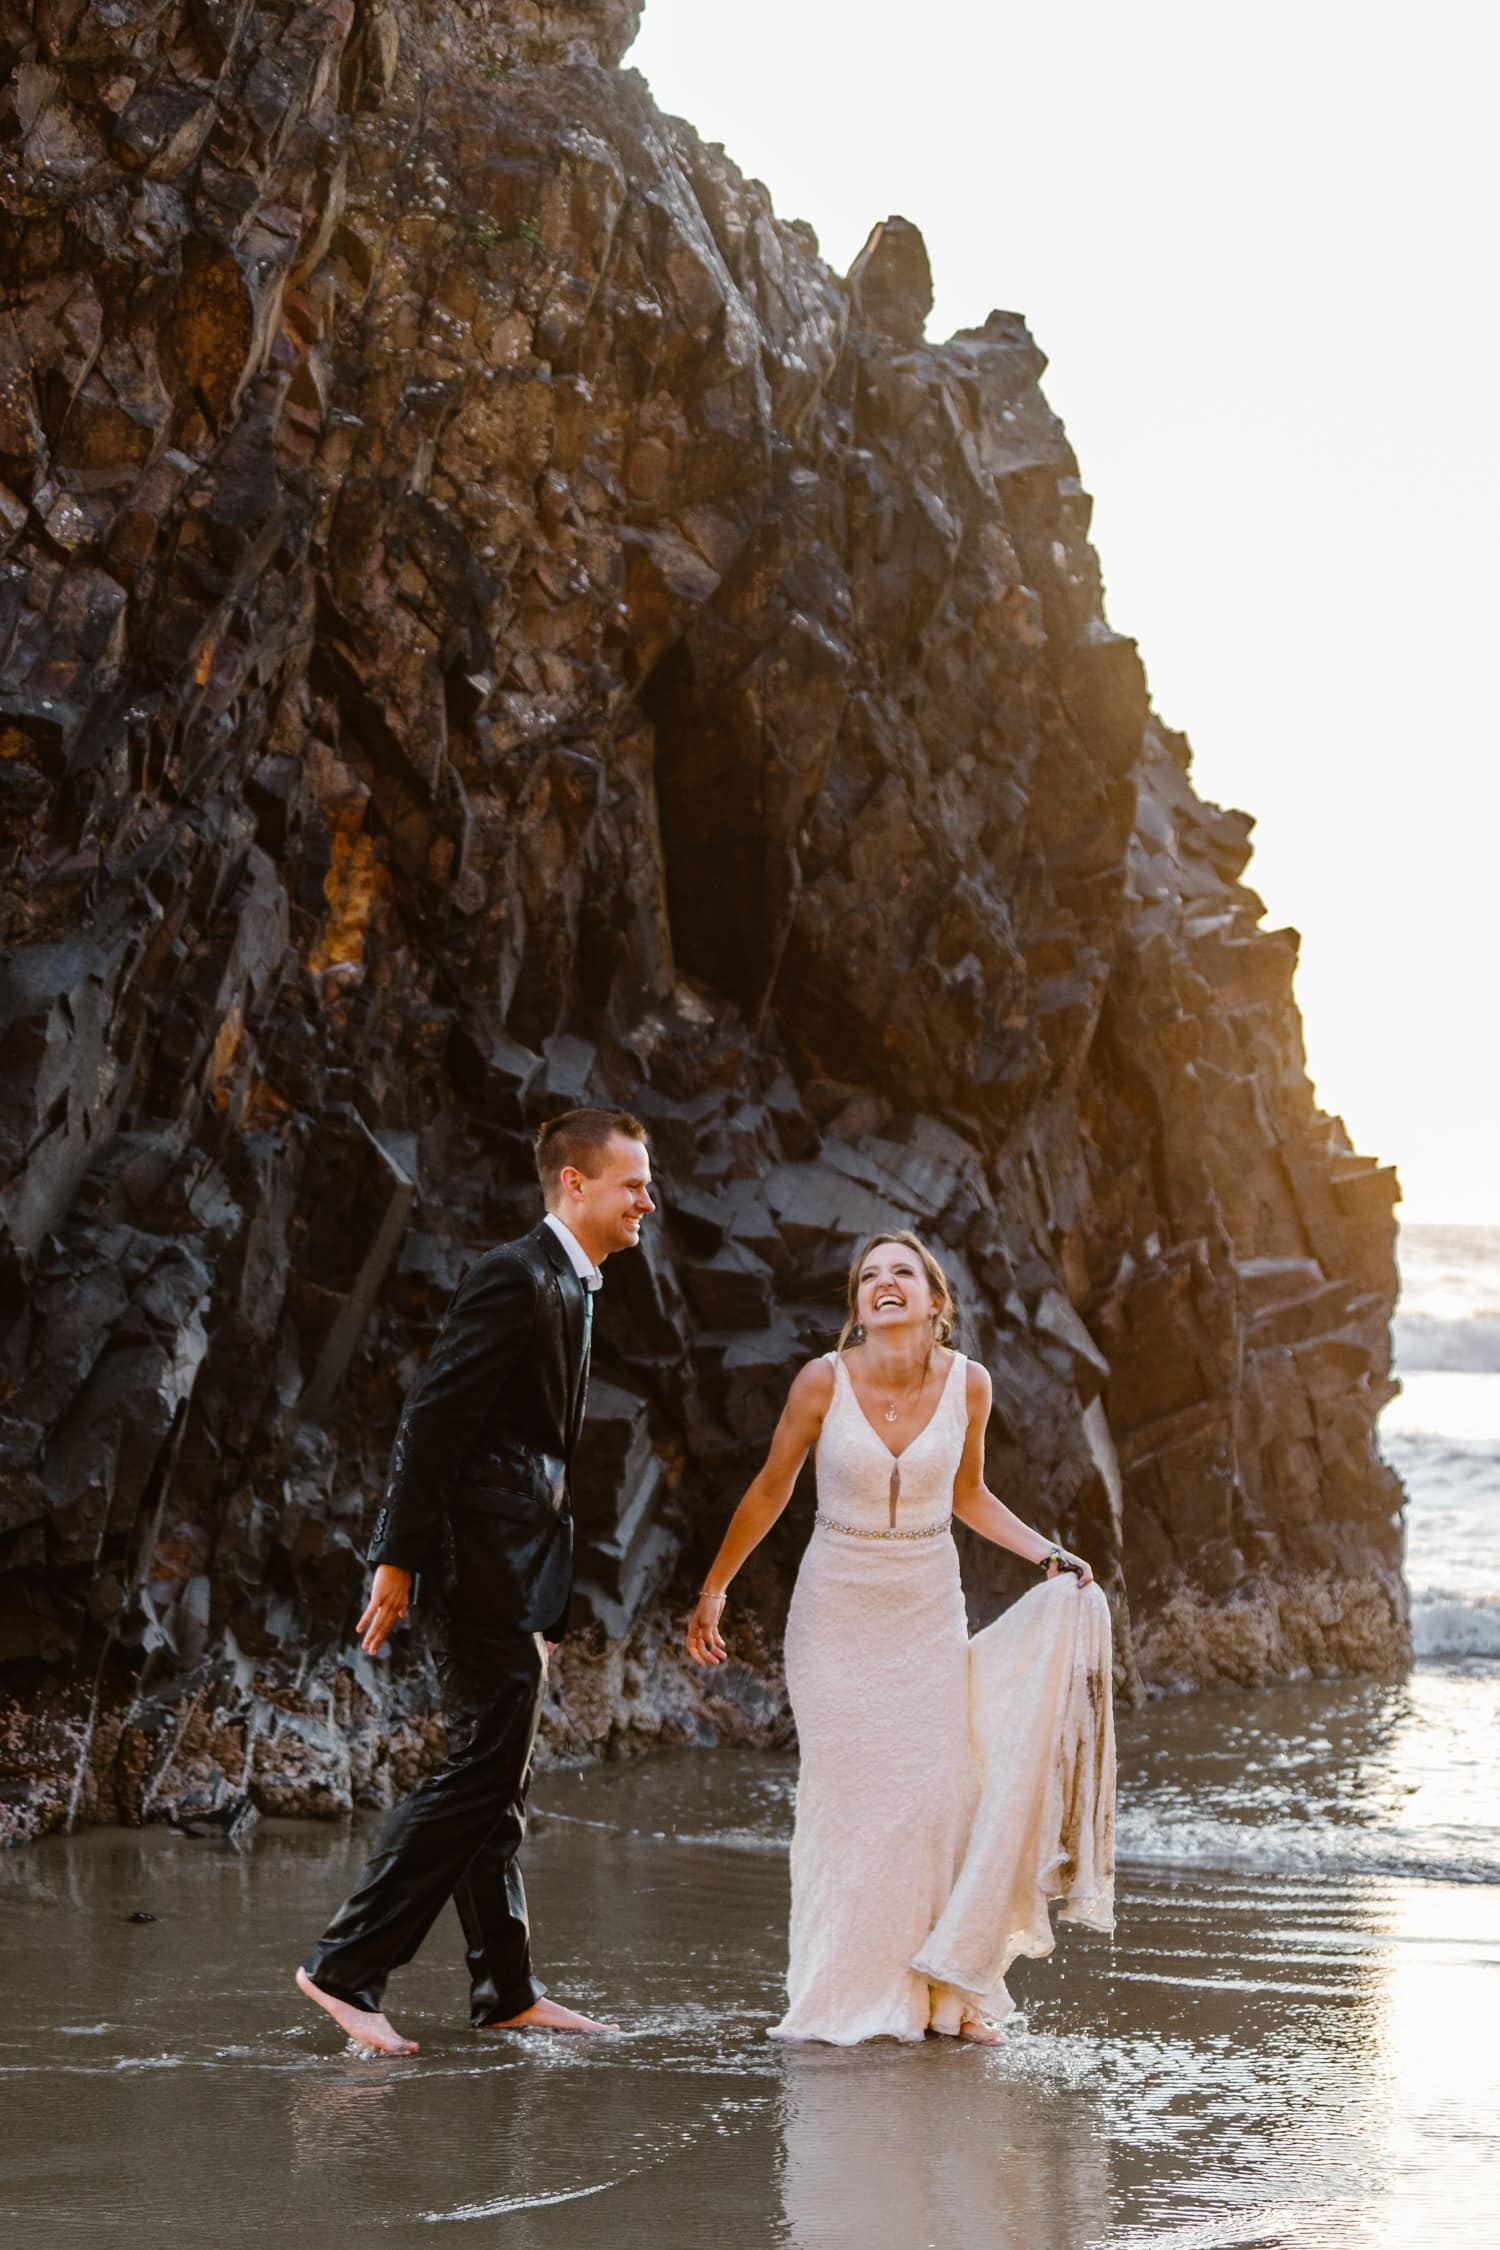 Bride and Groom soaked in ocean water at Hug Point & Cannon Beach Elopement